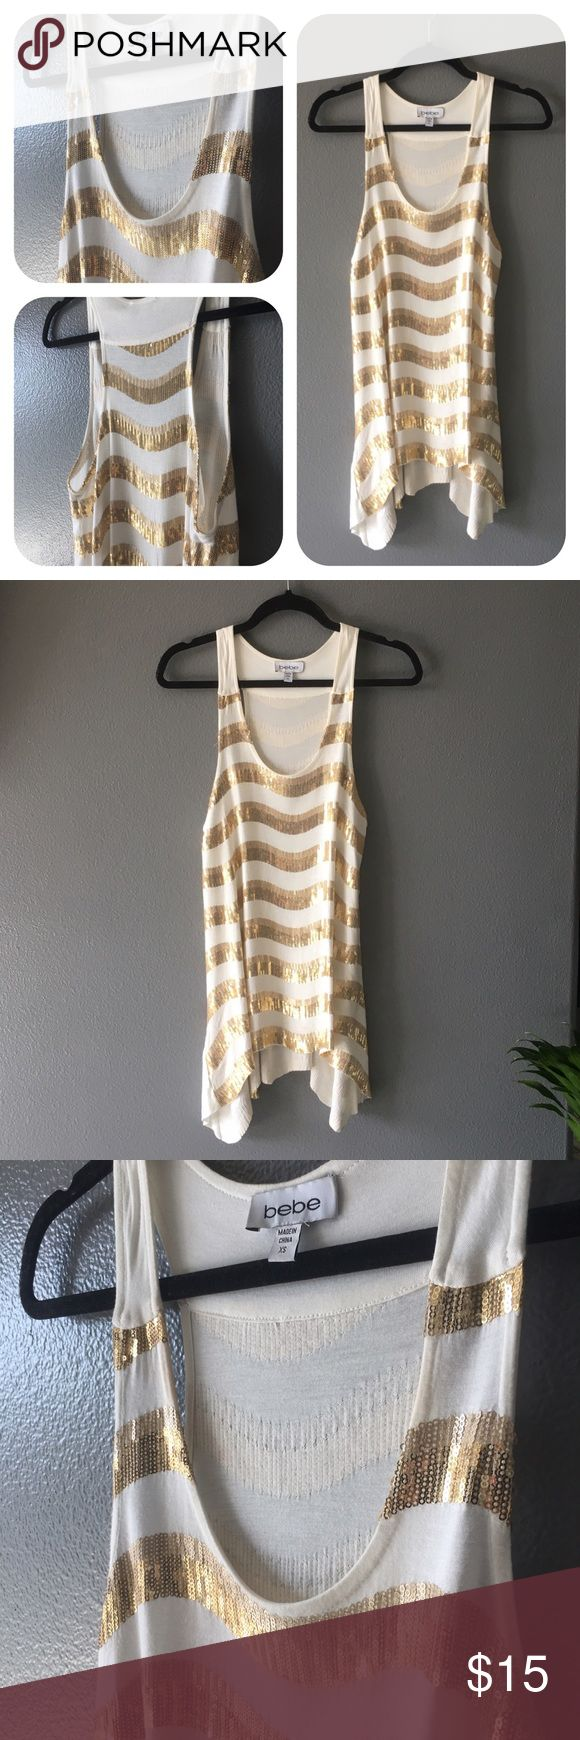 """BEBE gold and white micro-sequin tunic dress / top This could be worn as a cute flapper-style dress with heels and an updo OR as a GNO top with black leather leggings and heels! Full length at the longest part is 34"""" and the shortest part is 27"""". The size is XS, but fits pretty loosely, so it feels like a snall to medium. Always feel free to ask any questions! Please make an offer :) bebe Tops Tunics"""